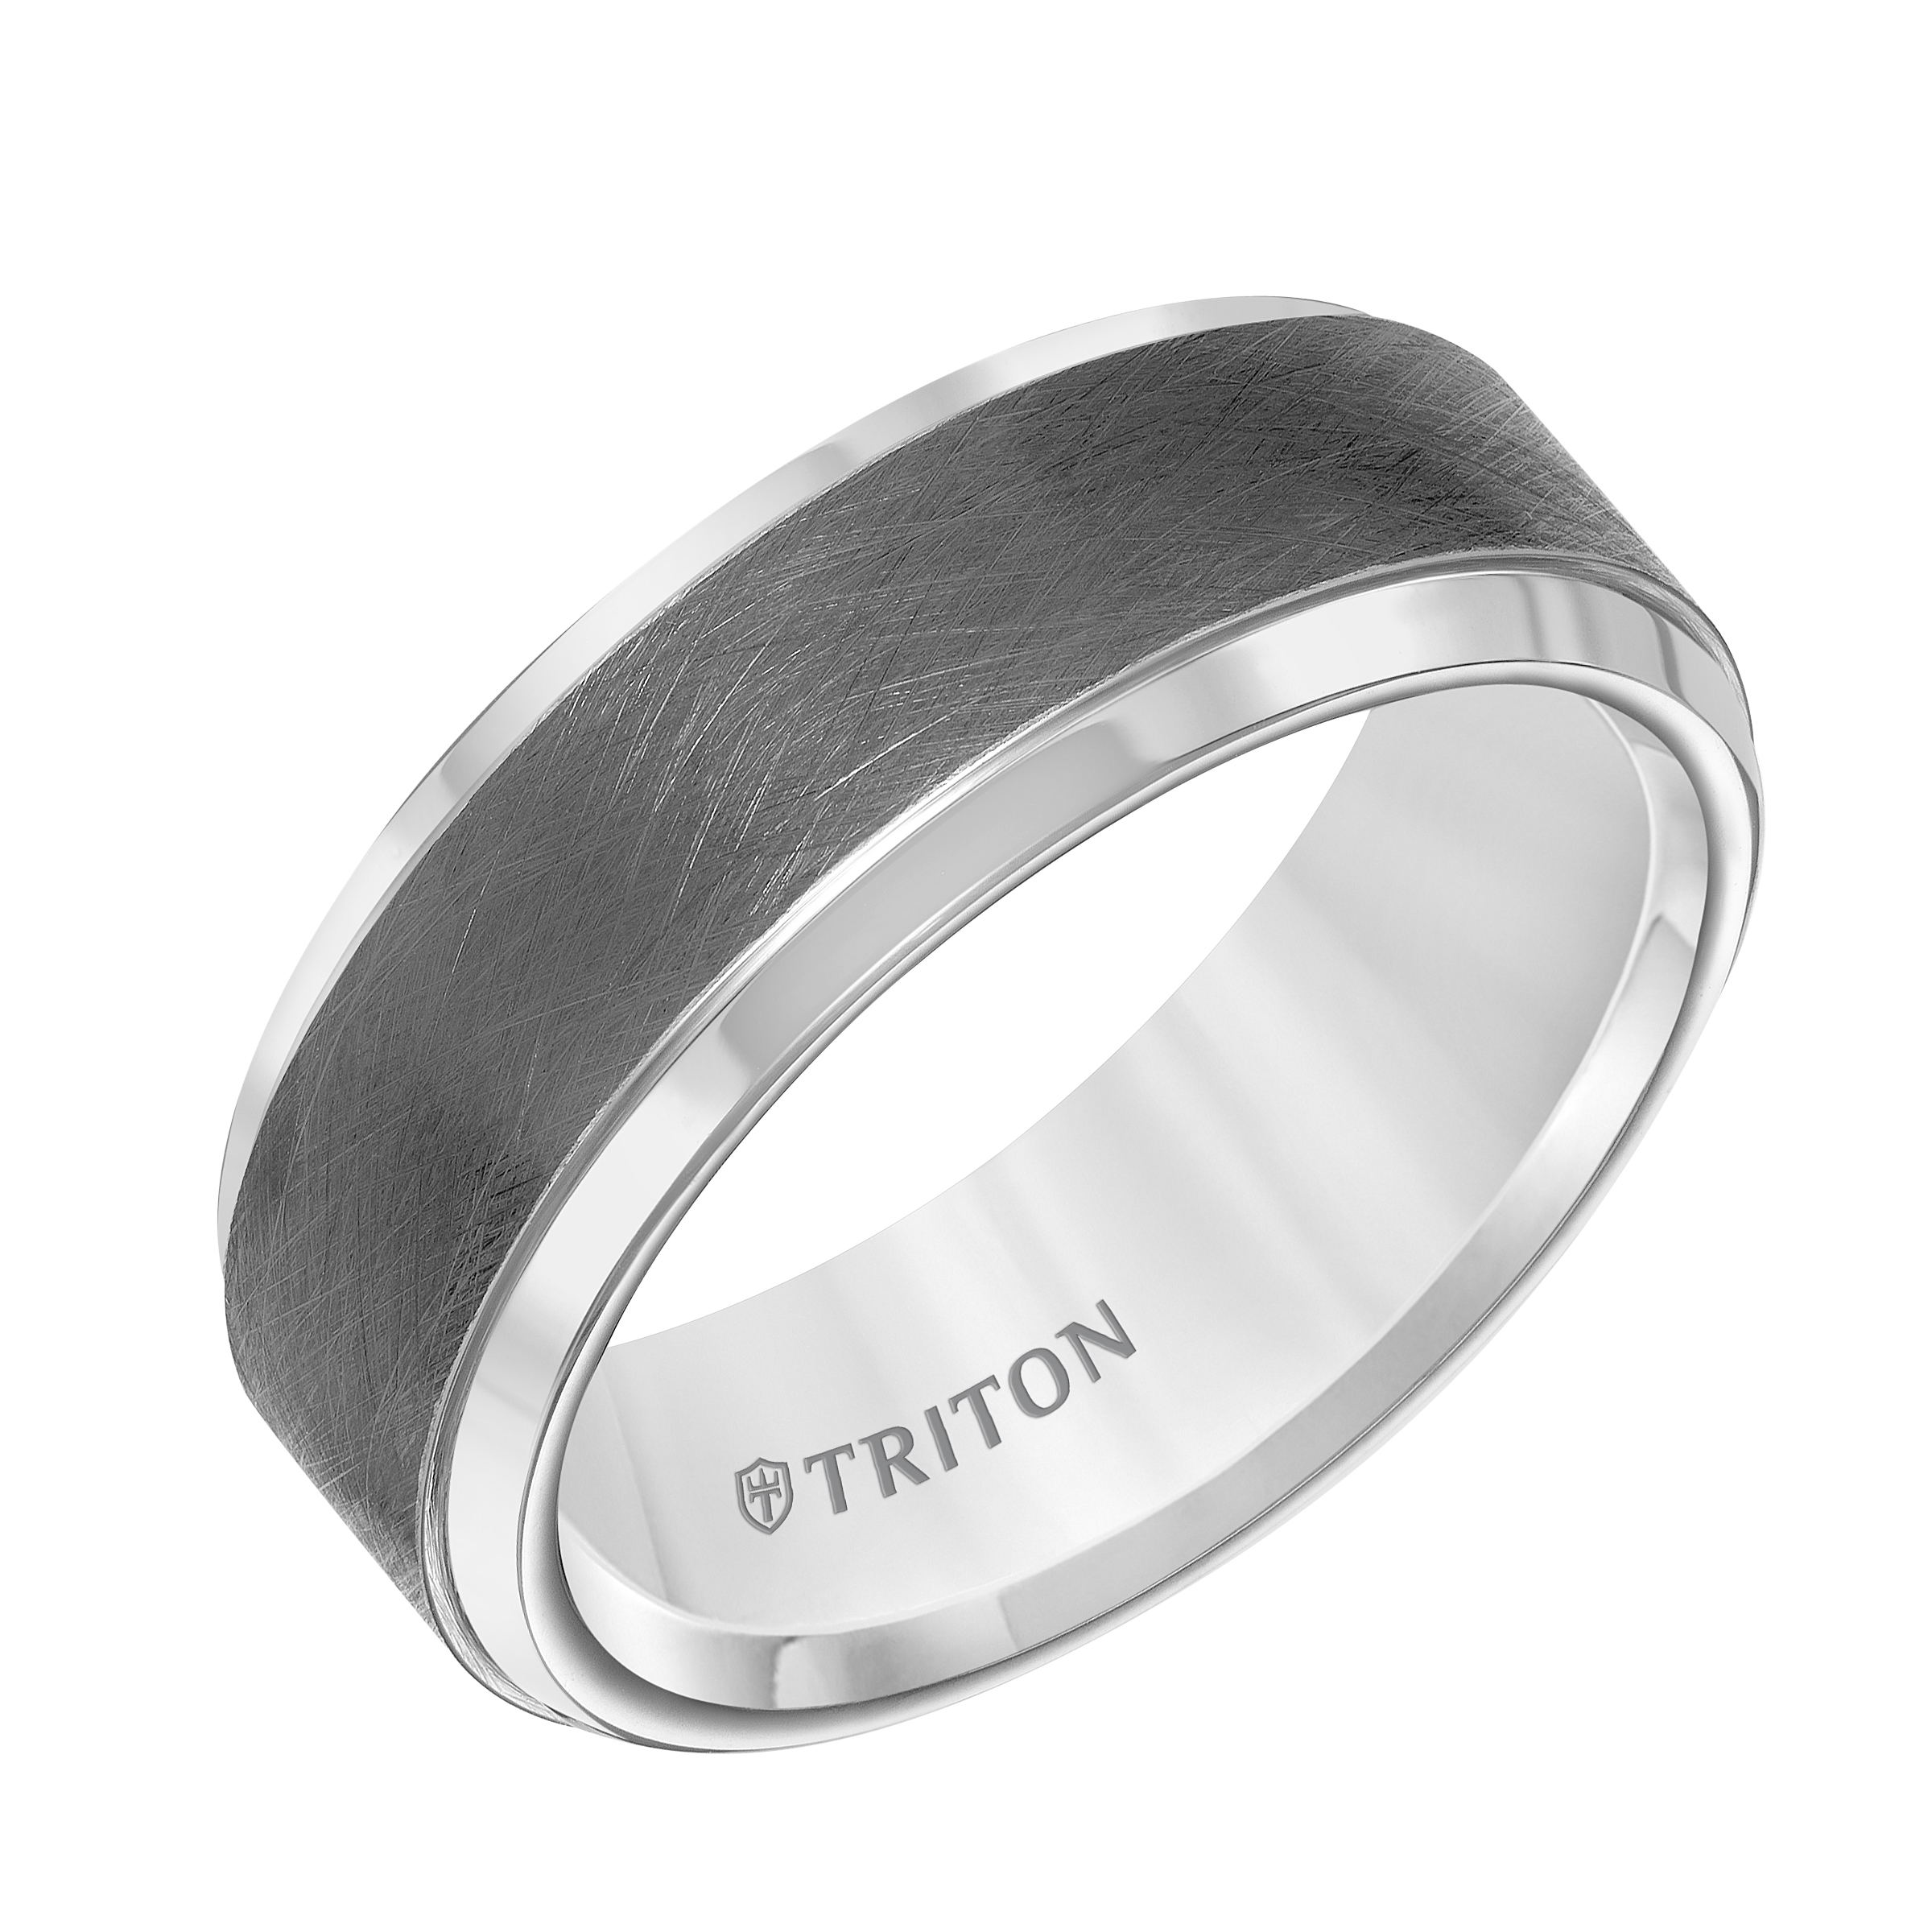 rough ring wedding band for gold rings pin flat triton white regarding pccmed men